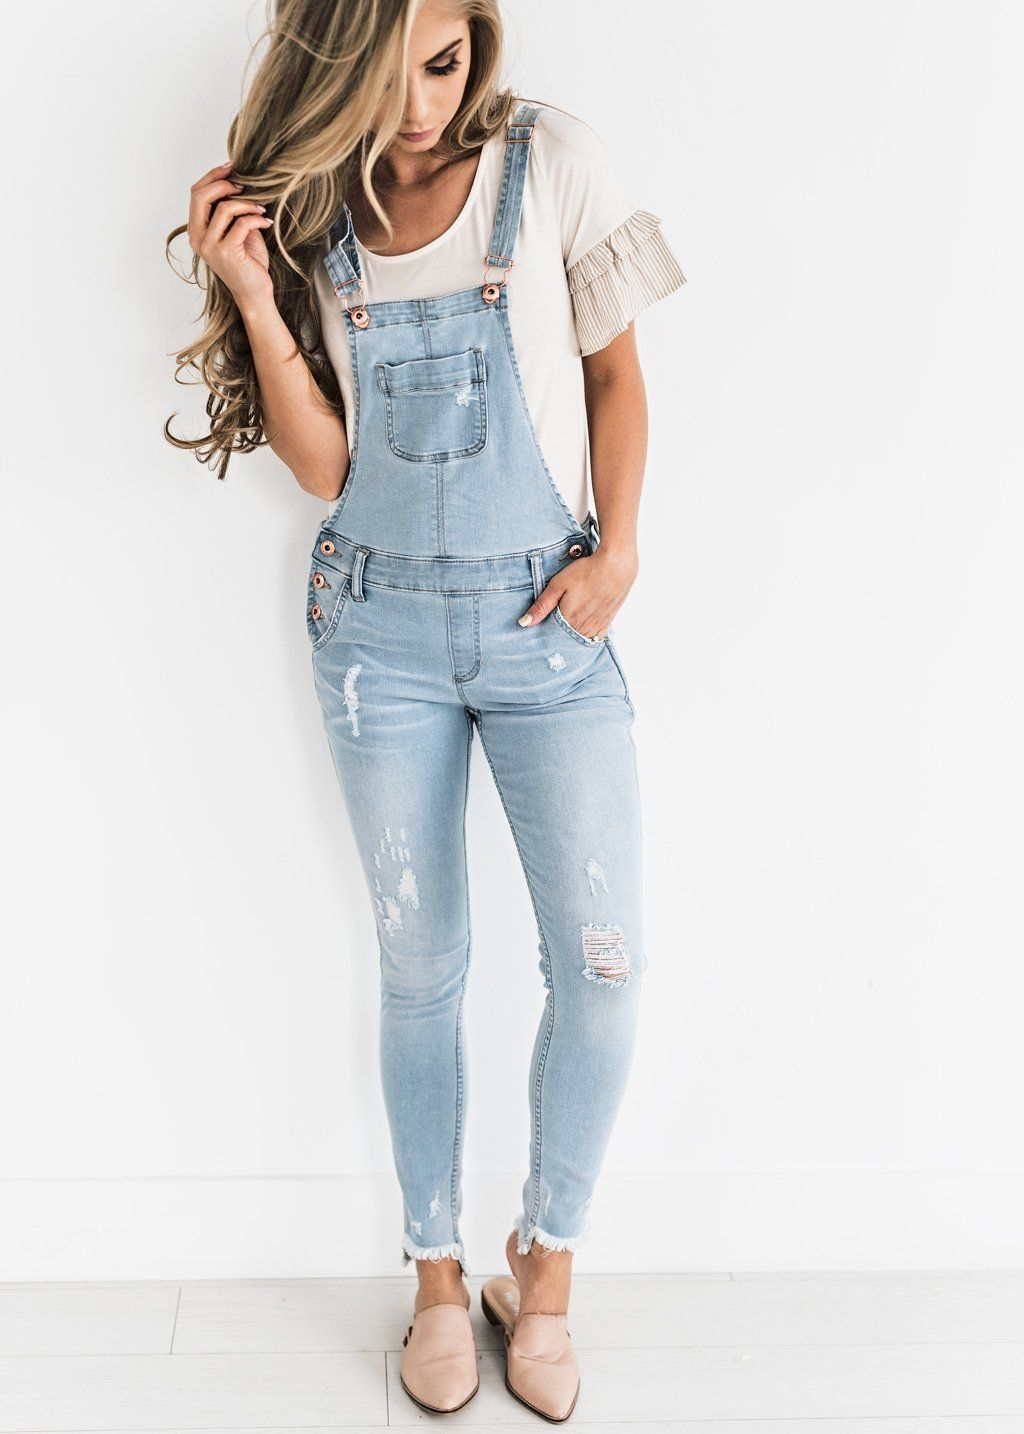 d4001f048321 Light Washed Overalls